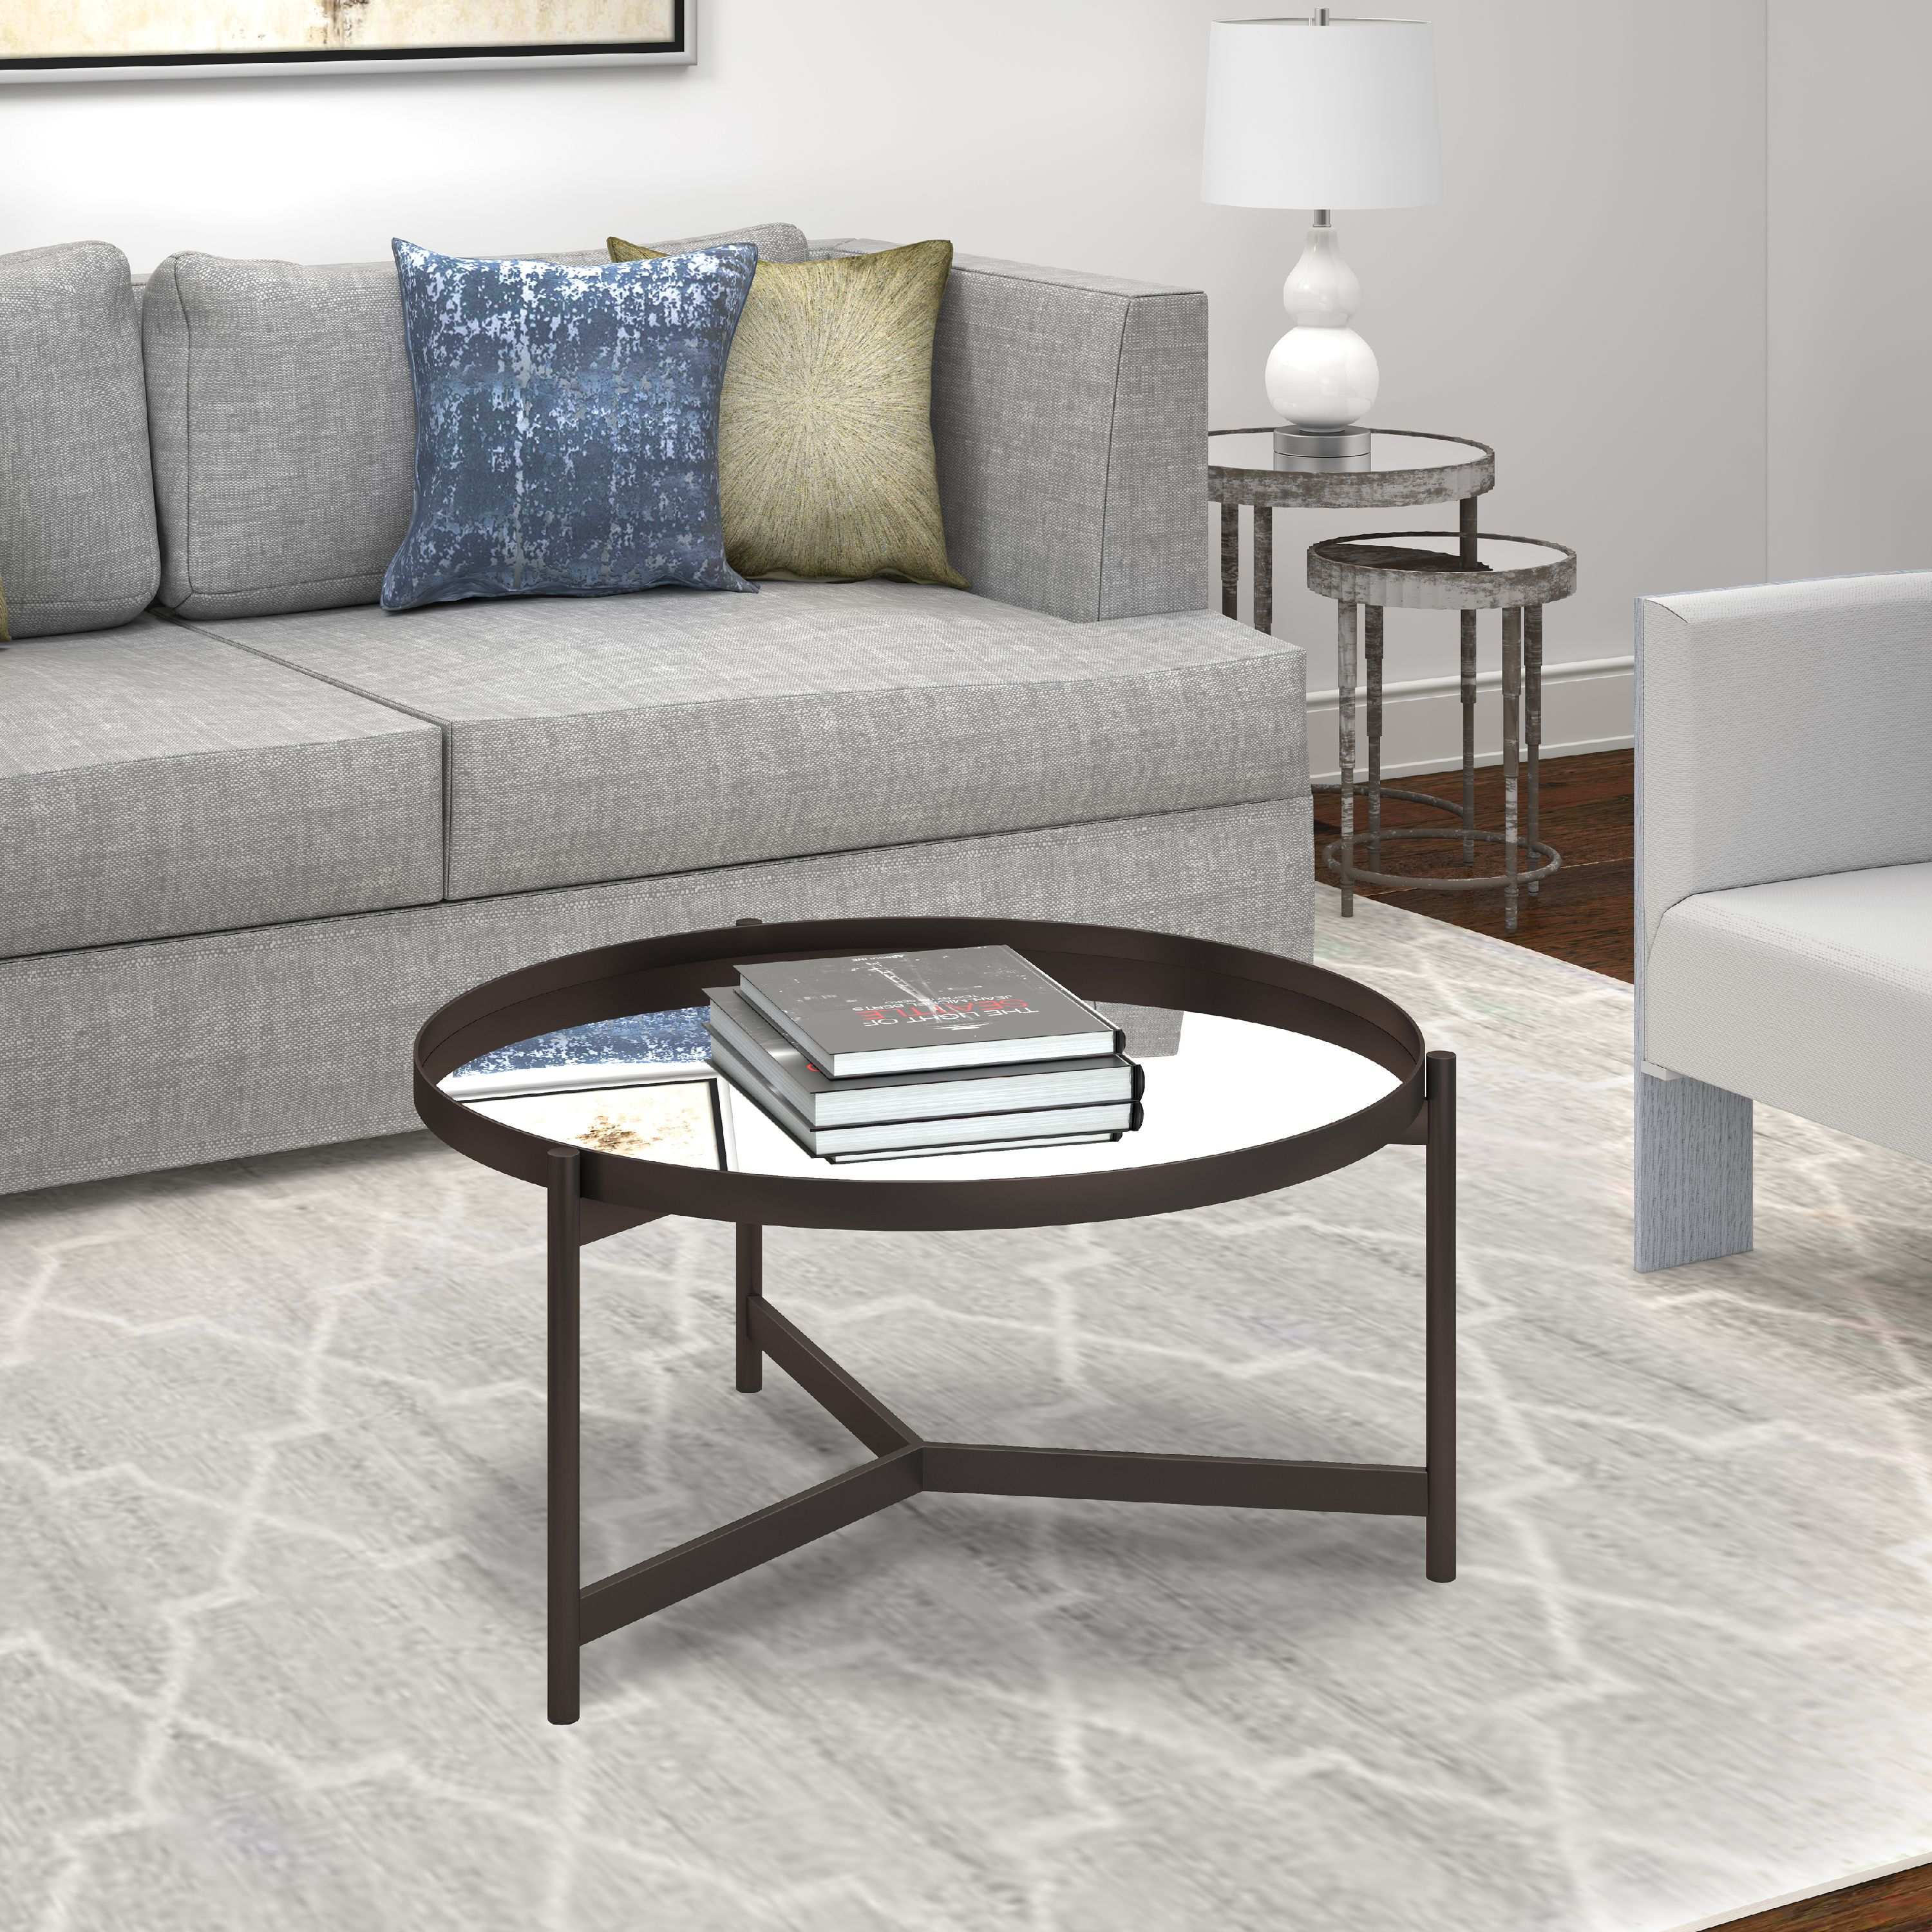 Moroccan-Inspired Round Coffee Table With Glass Mirrored ...